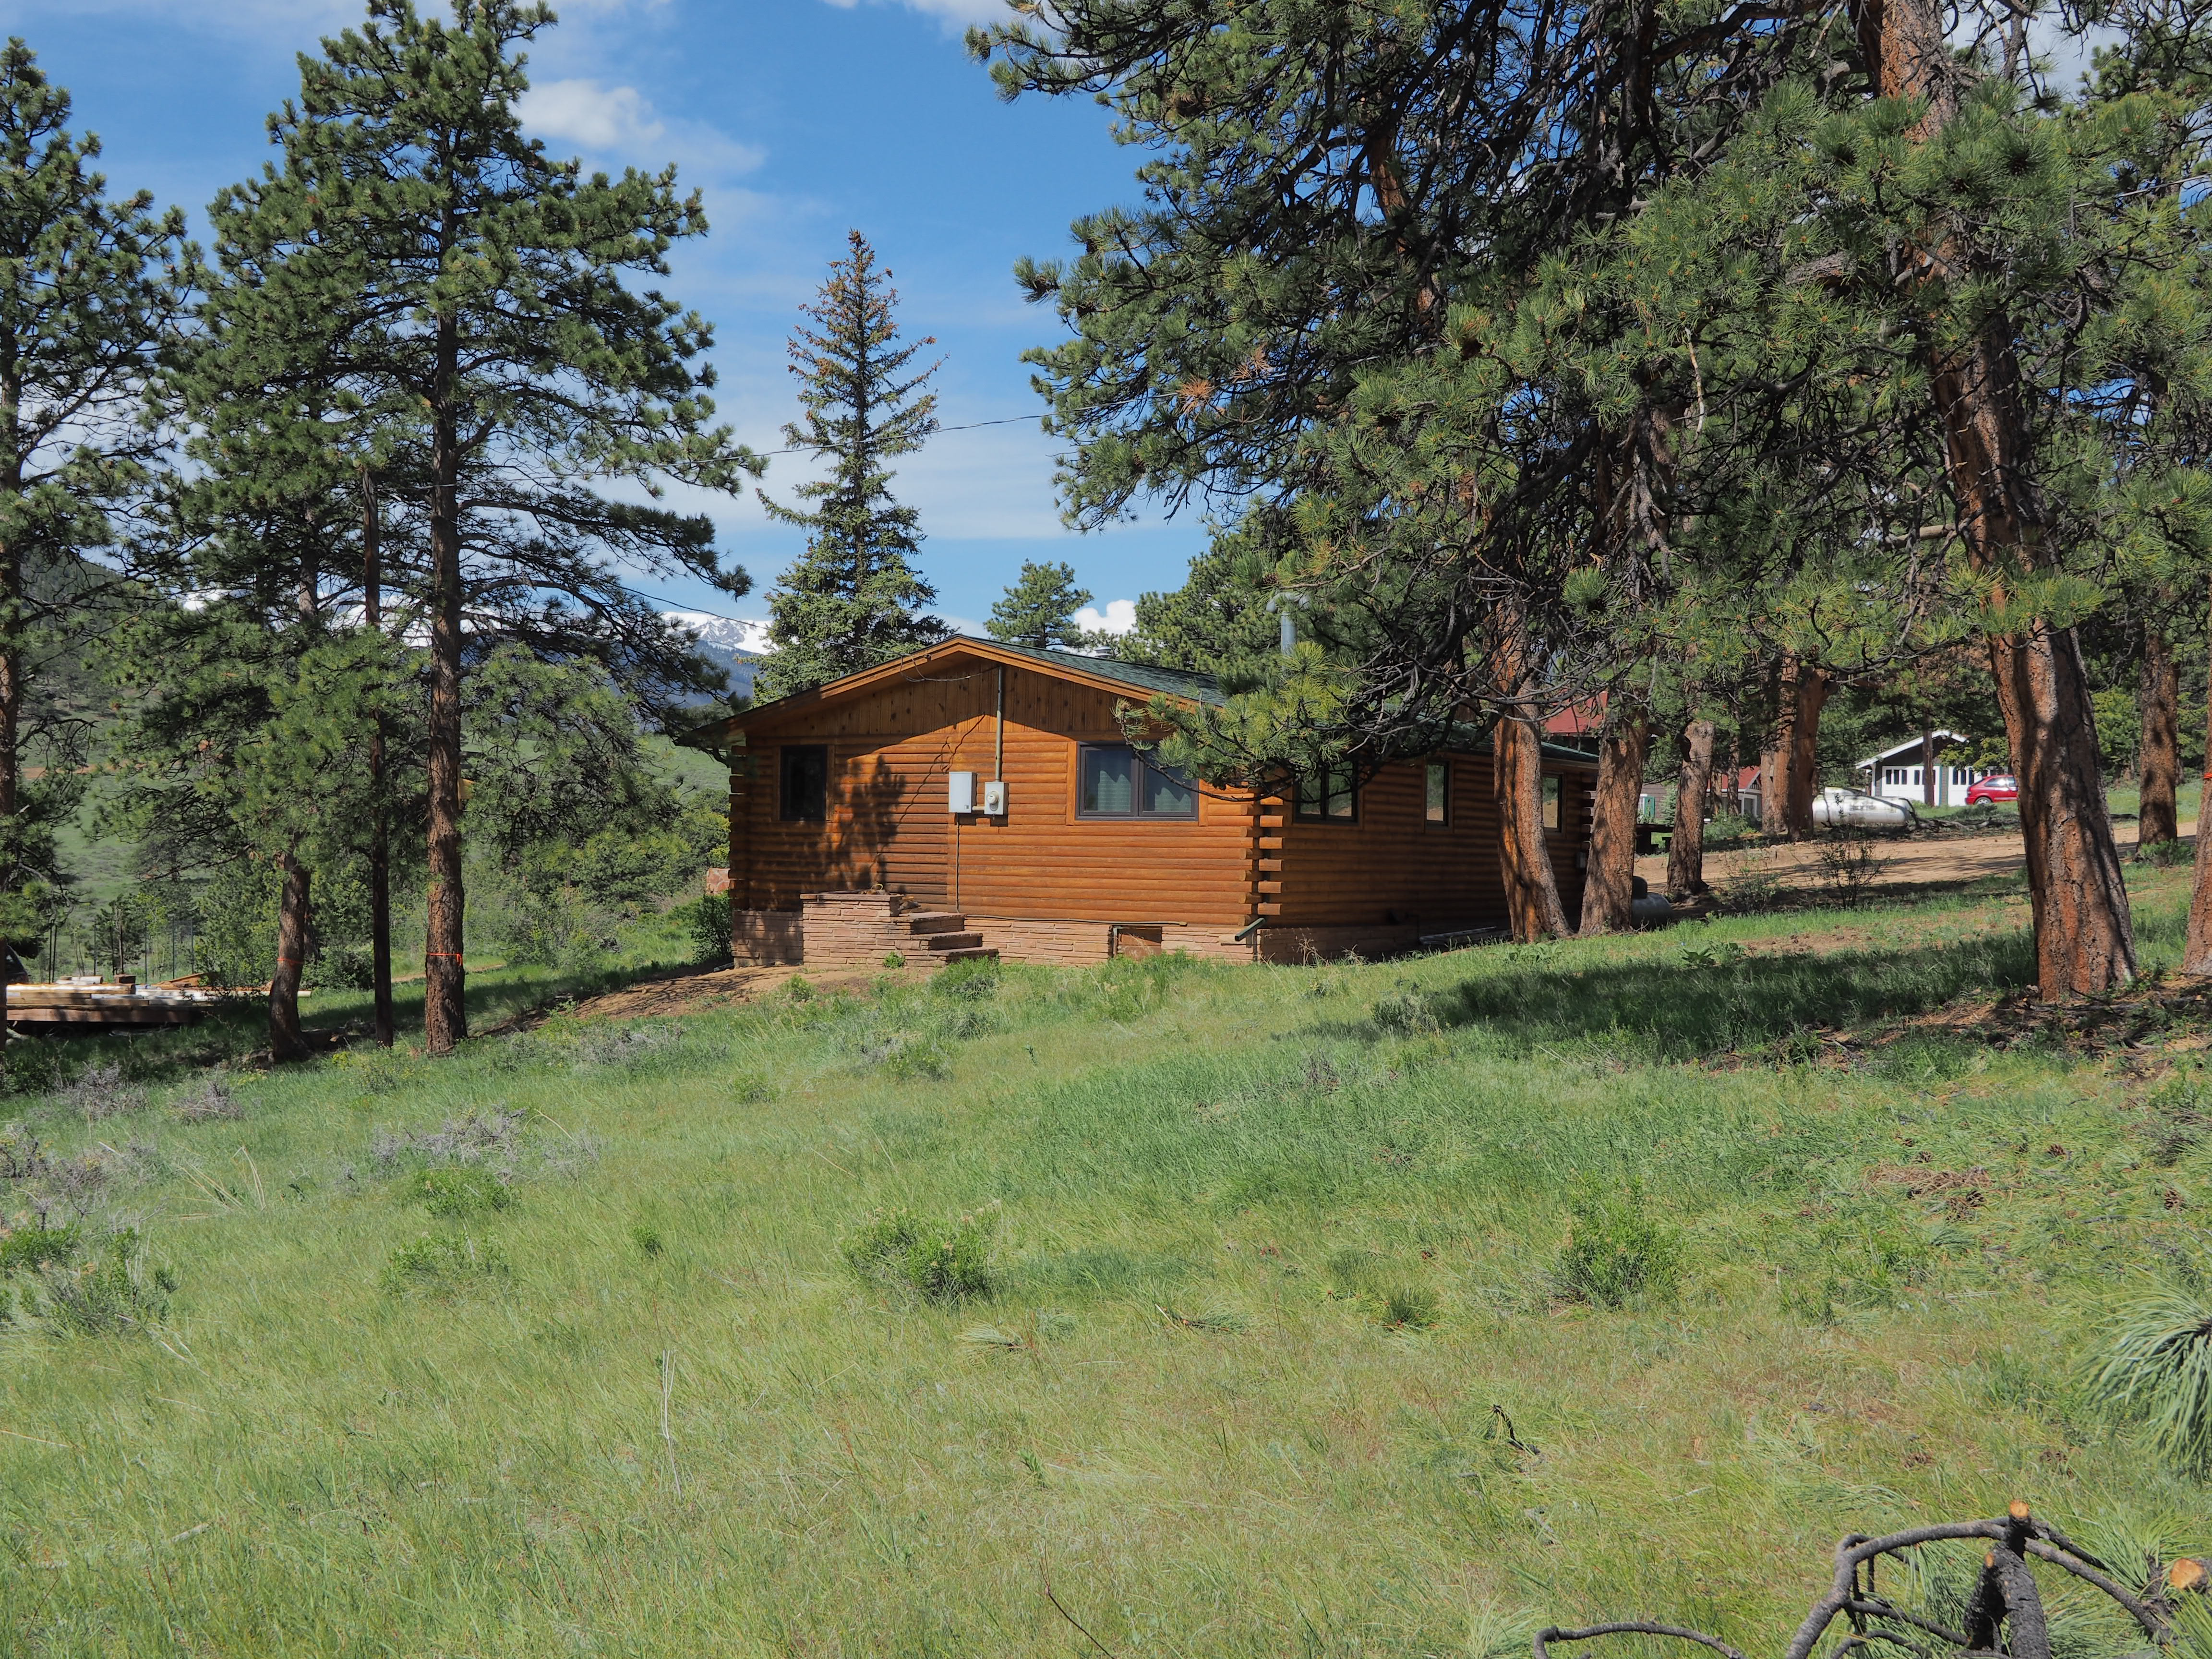 exterior colorado the lodge cabins resorts historic estes crags park by listings hcl diamond